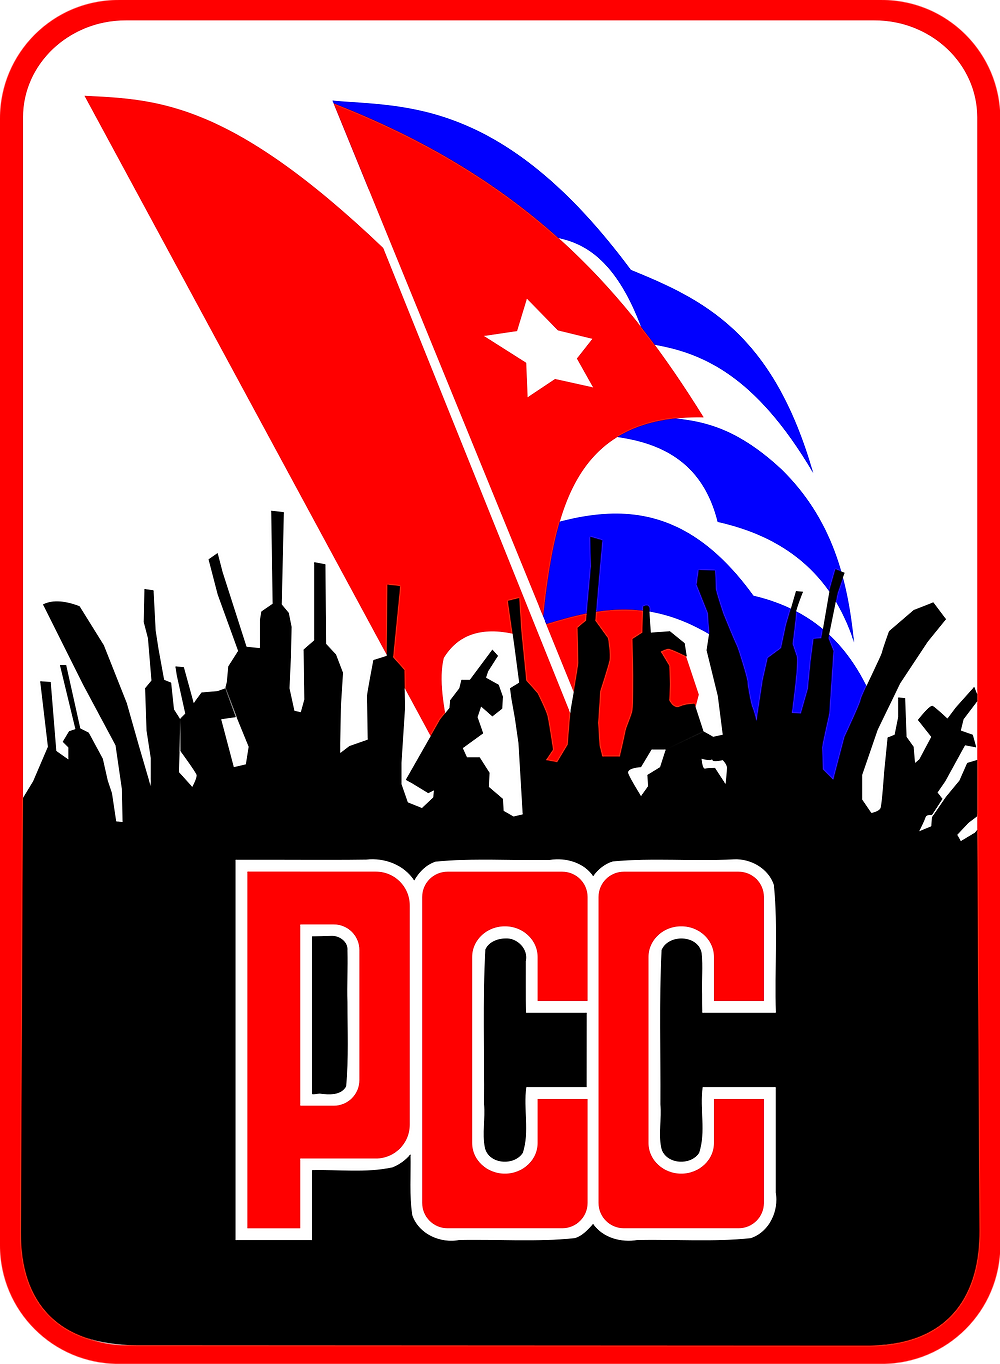 LOGO_PART_COM_CUBANO.svg.png